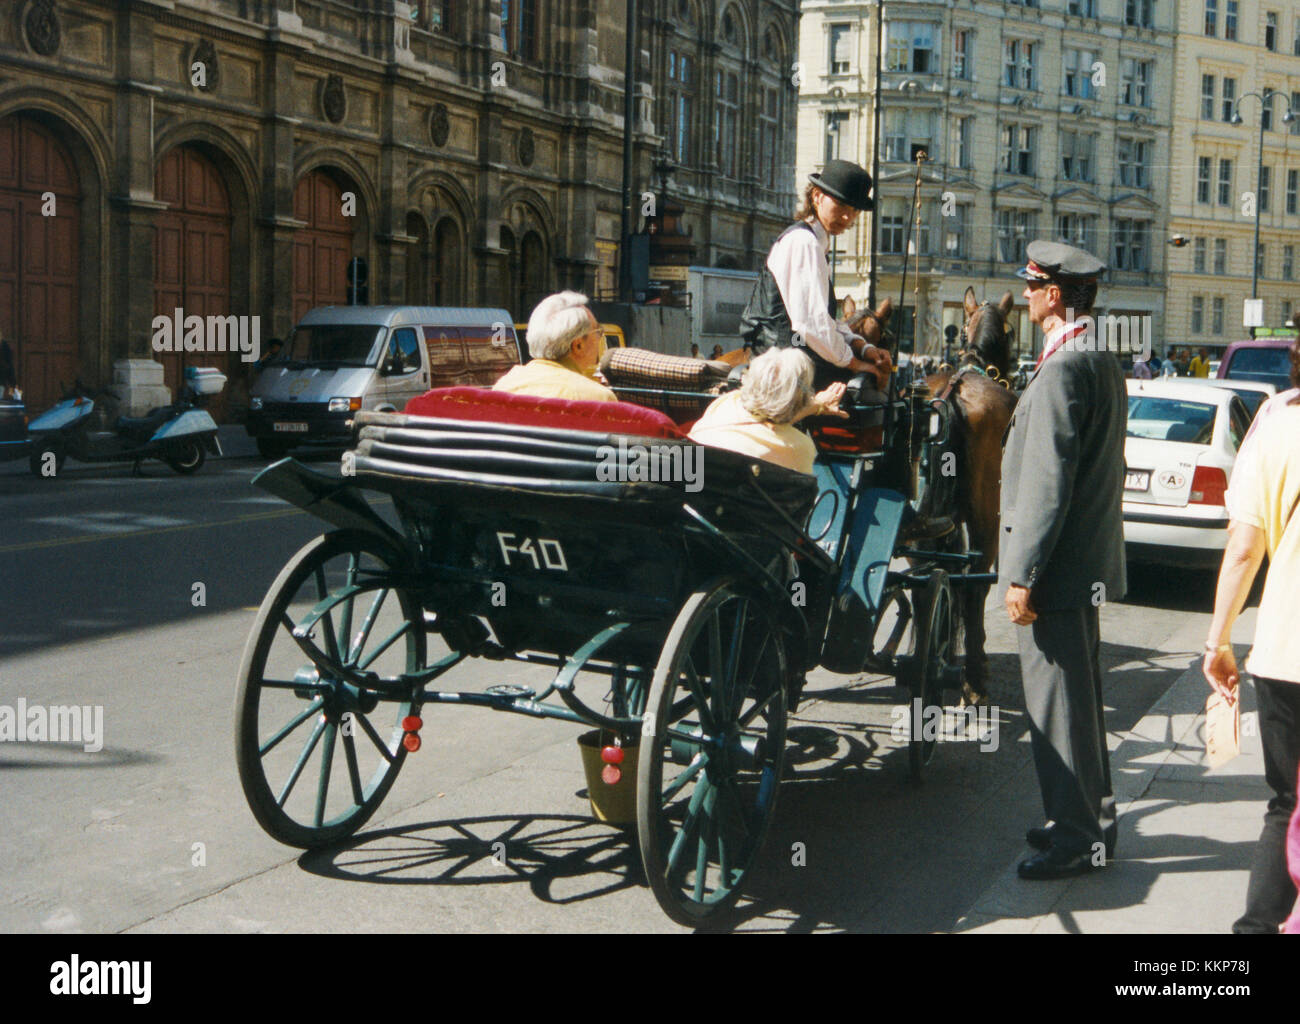 HORSE CARRIAGE with tourists outside Hotel Sacher in Vienna 2010 - Stock Image